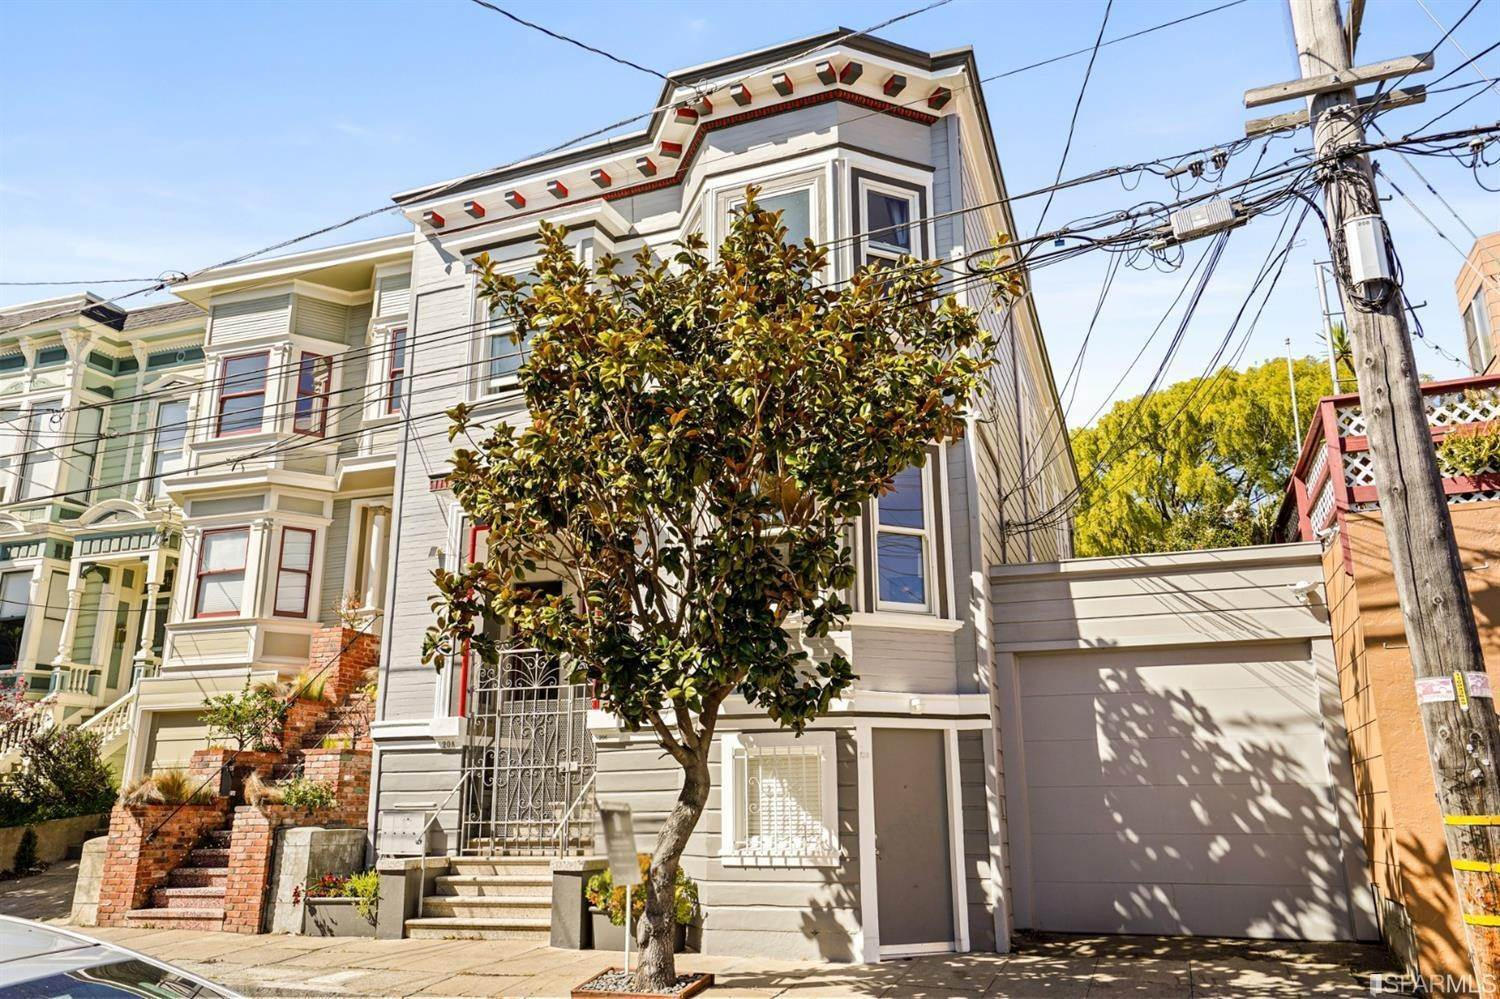 Tenancy In Common for Sale at 210 Dorland Street San Francisco, California 94114 United States